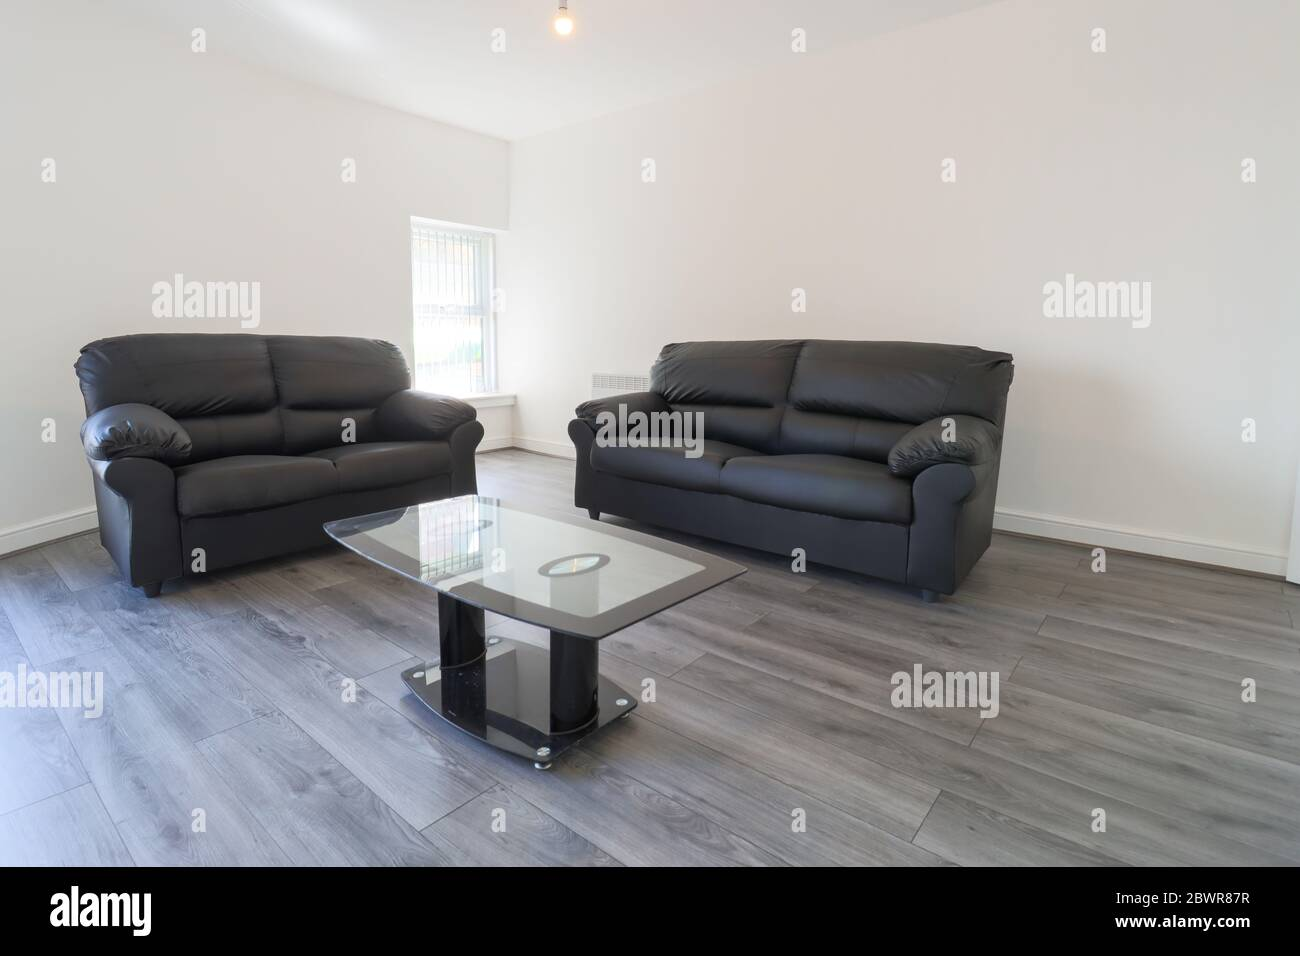 Picture of: A Modern British Living Room With Two Black Leather Sofas On A Grey Wooden Floor With White Walls And Modern Blinds Up At The Window Stock Photo Alamy